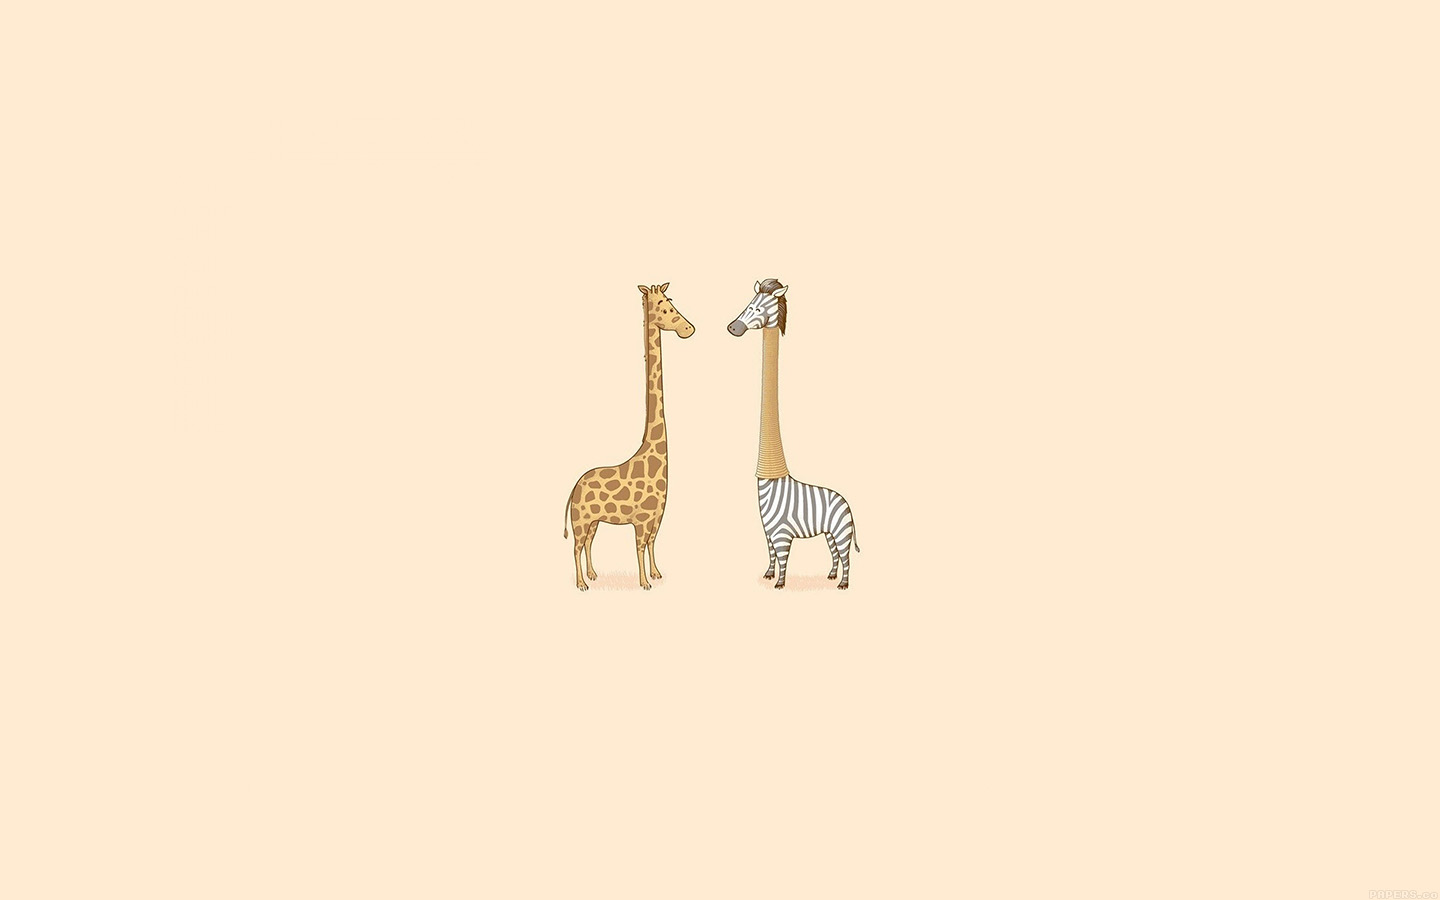 aj79-cute-giraffe-yellow-animal-minimal